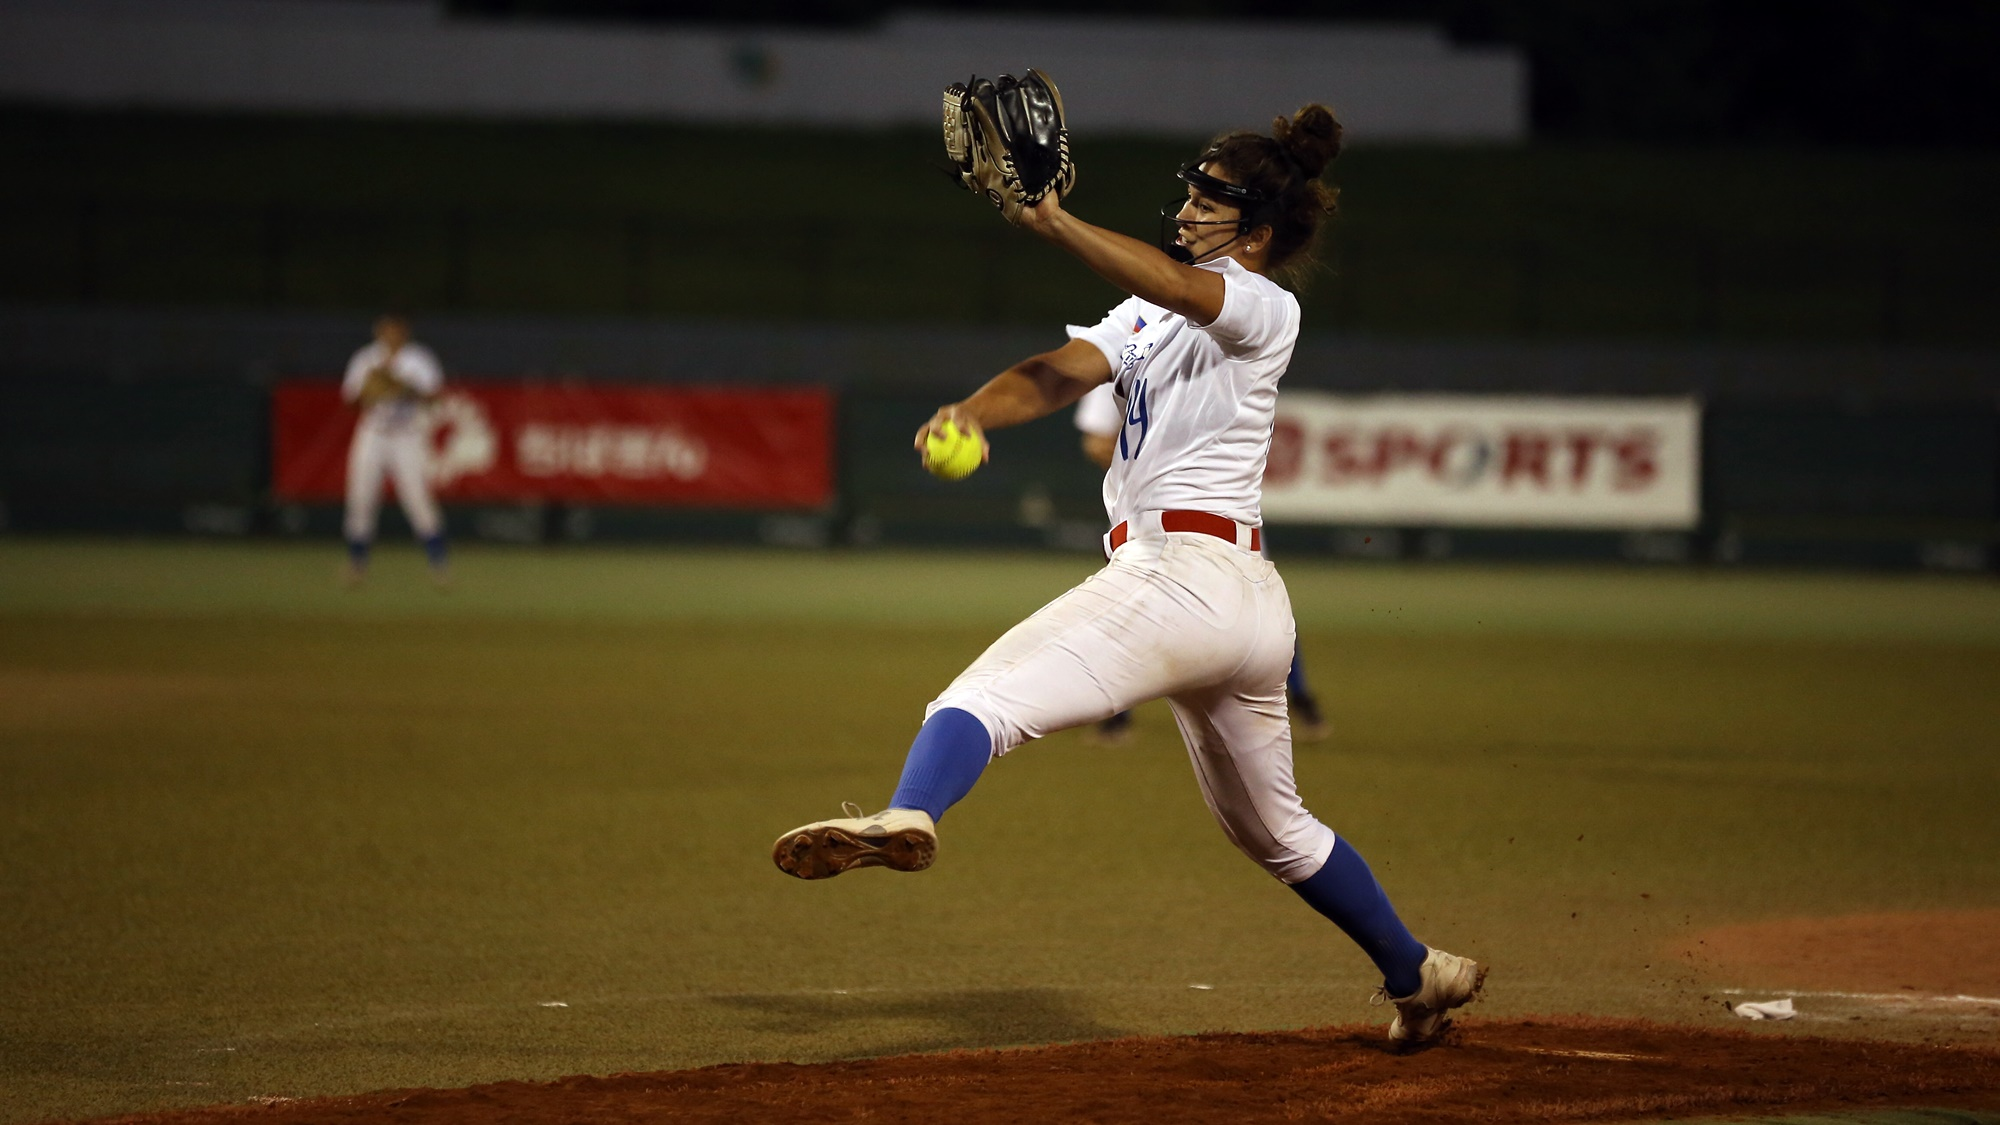 Sierra Lange pitched on inning and received two runs